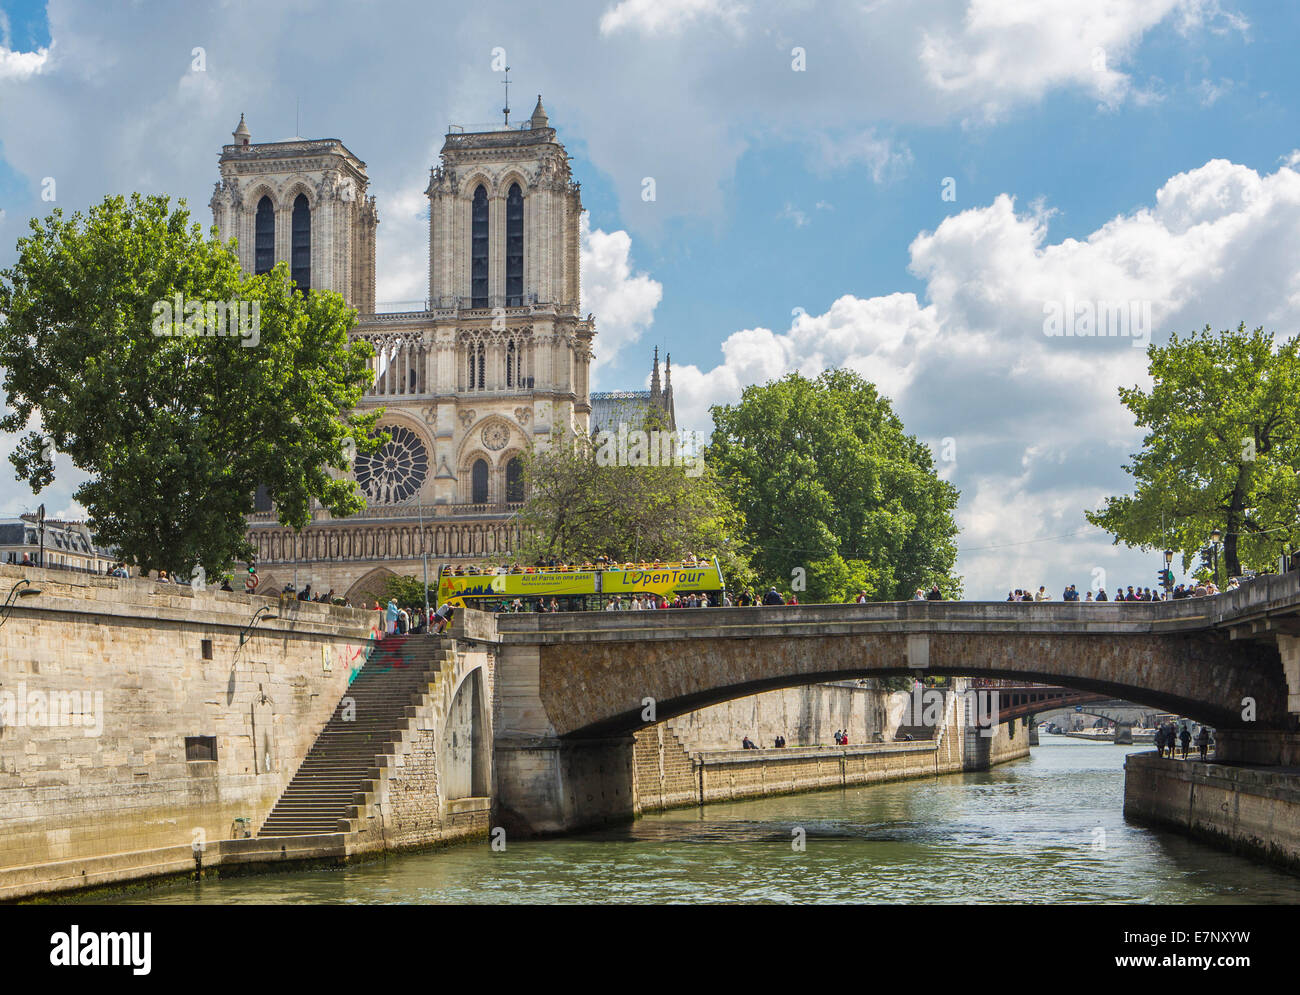 Cathédrale, Ville, France, Notre Dame, Paris, architecture, pont, cite, centre-ville, la Seine, le tourisme, Photo Stock